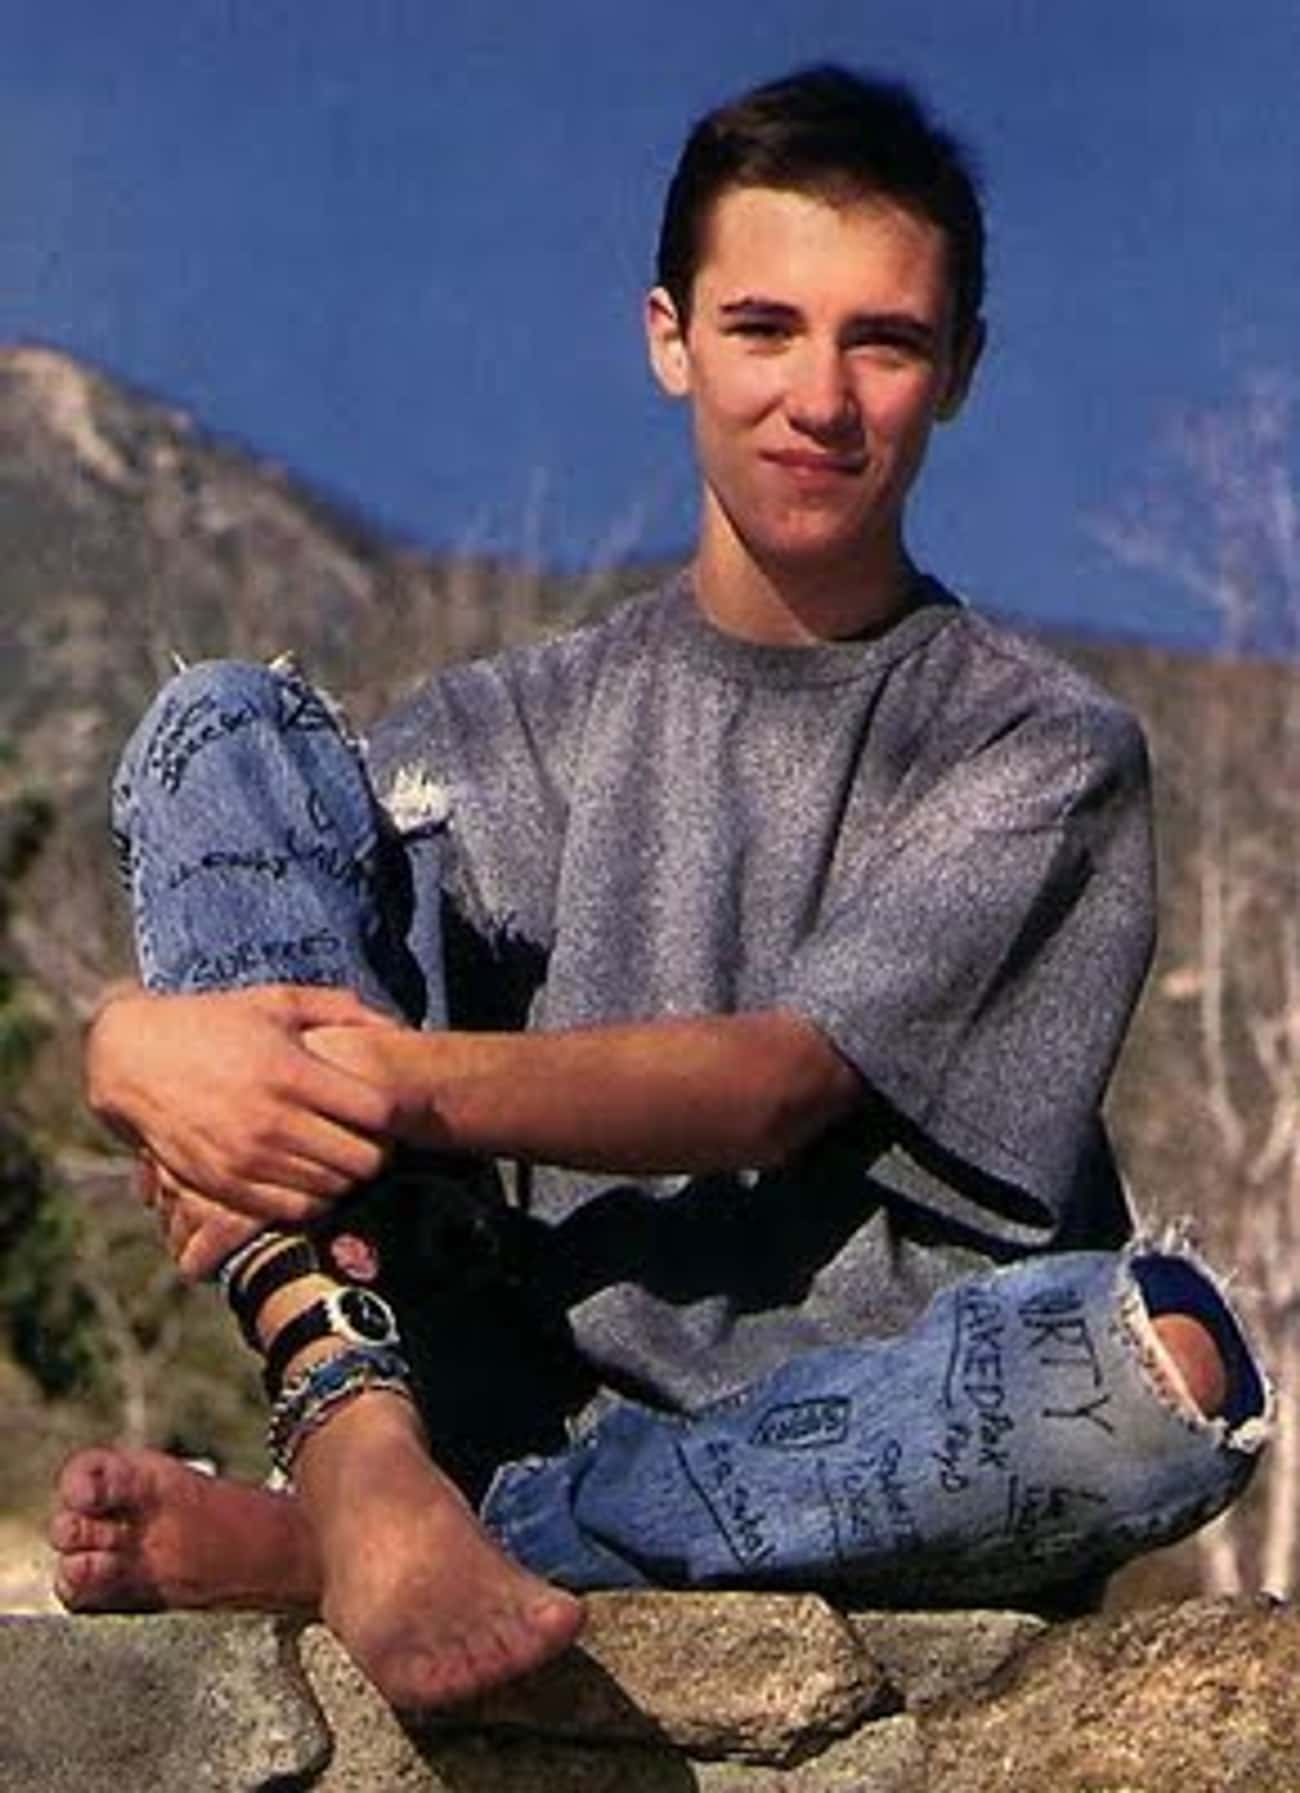 Wil Wheaton in Oversized T-Shi is listed (or ranked) 4 on the list Hot Wil Wheaton Photos